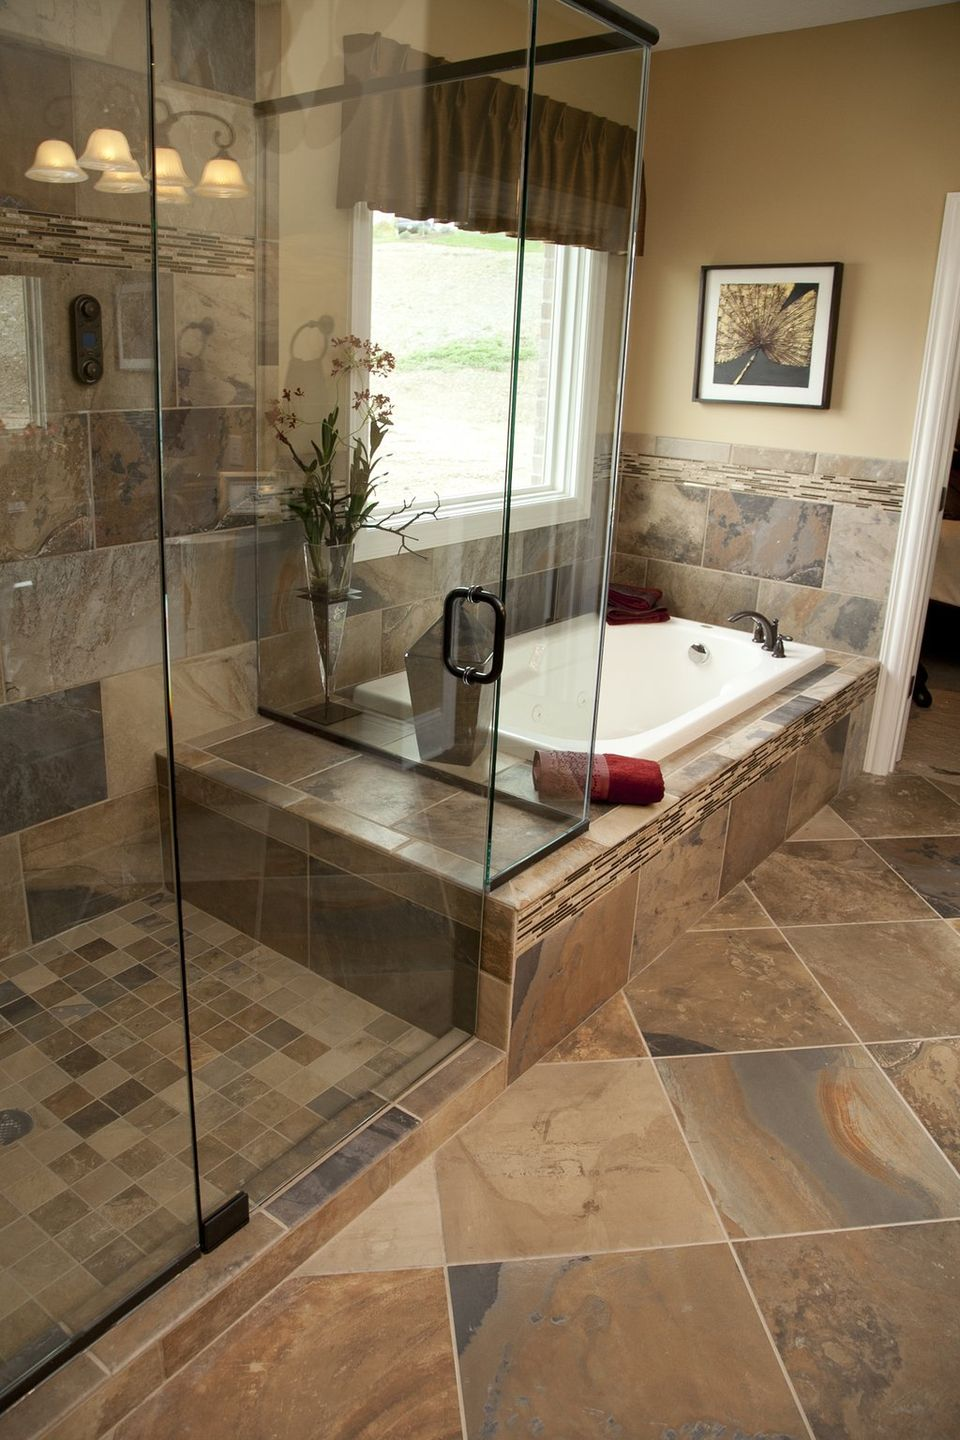 33 stunning pictures and ideas of natural stone bathroom floor tiles Tile bathroom